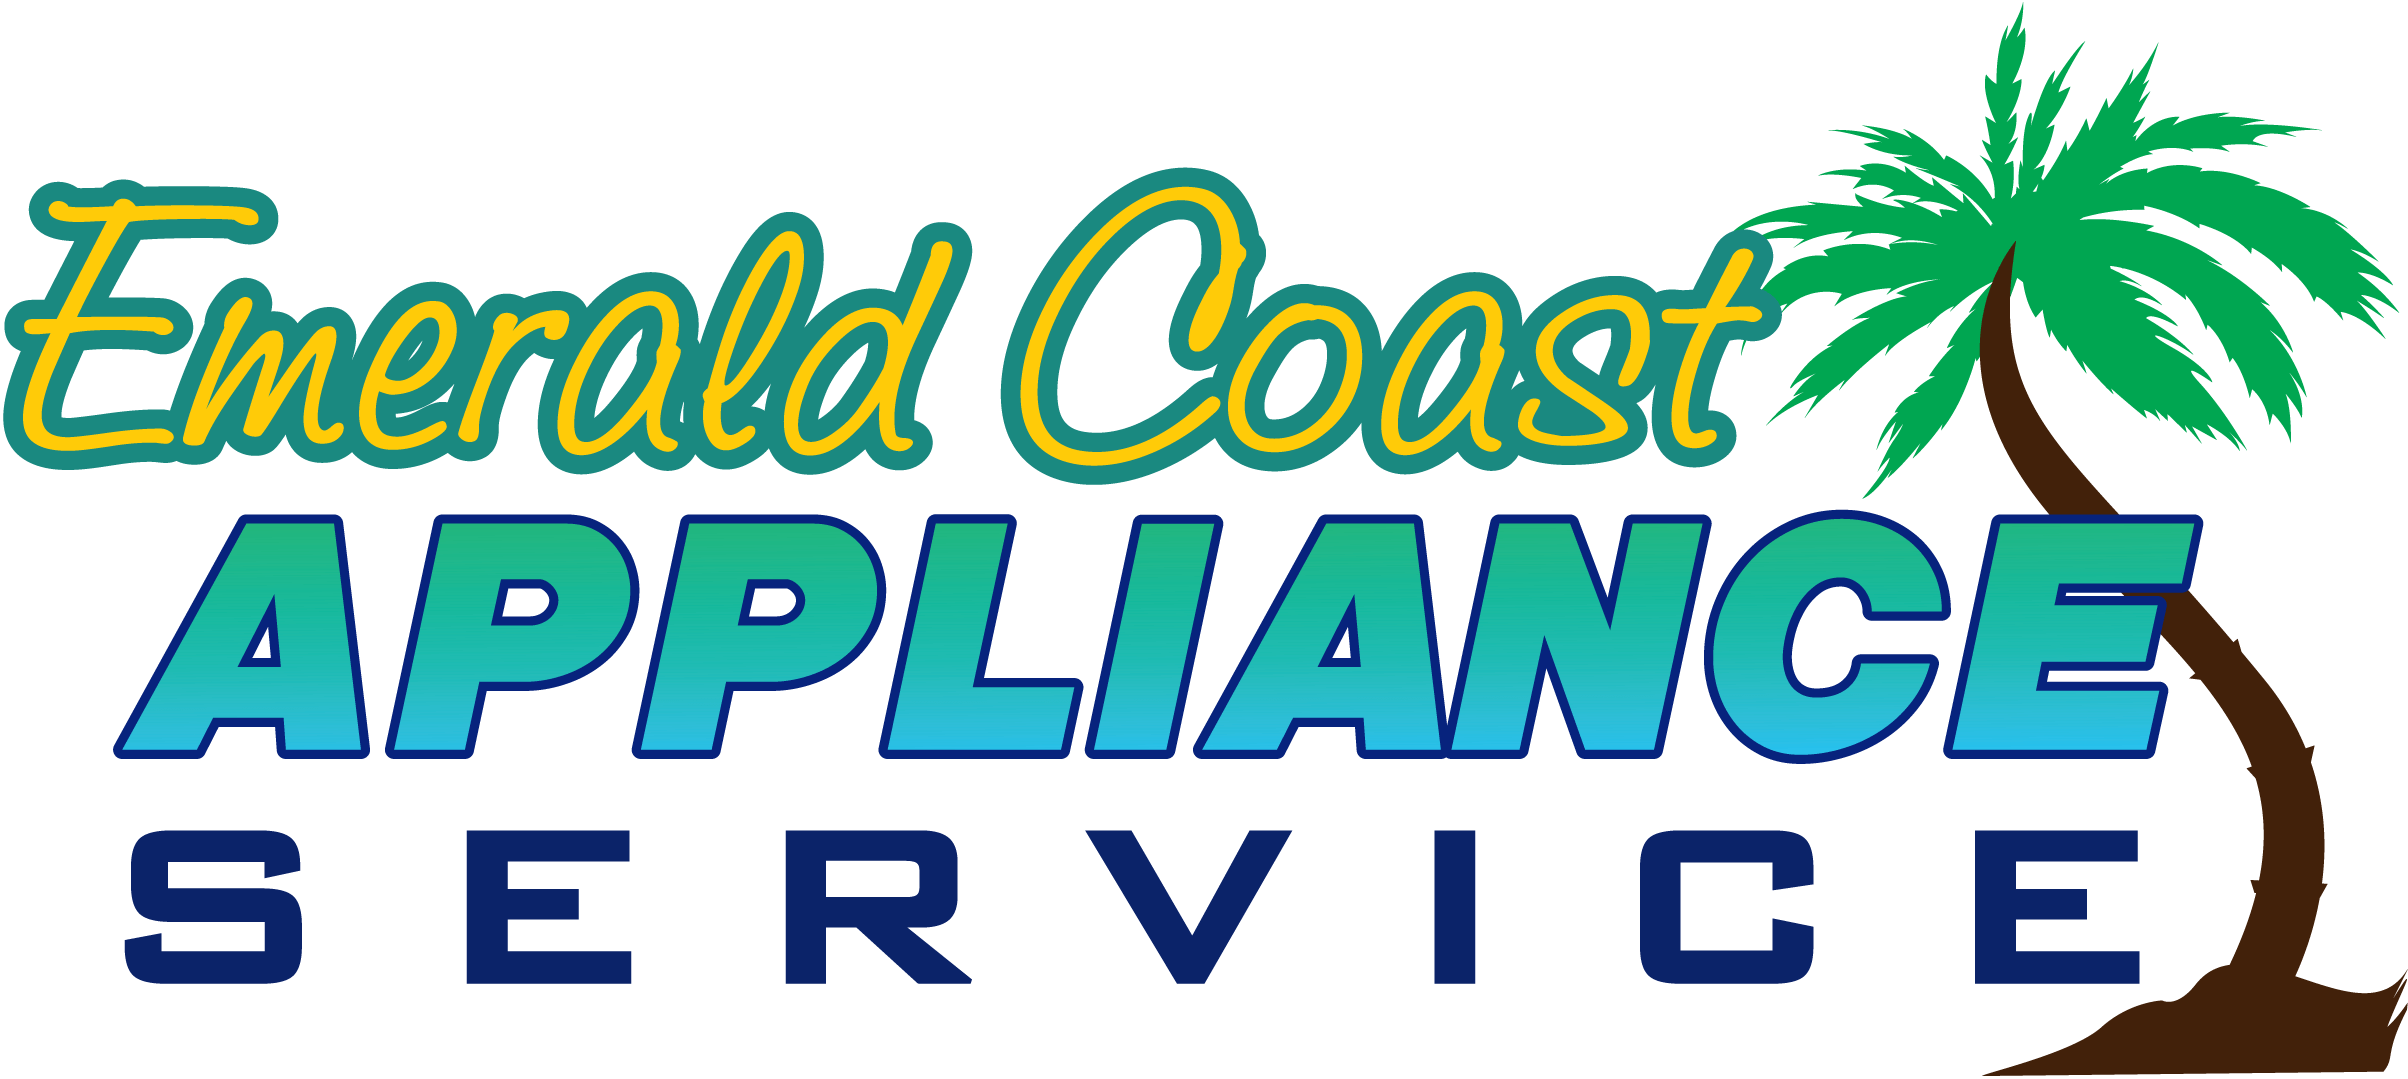 Emerald Coast Appliance Repair